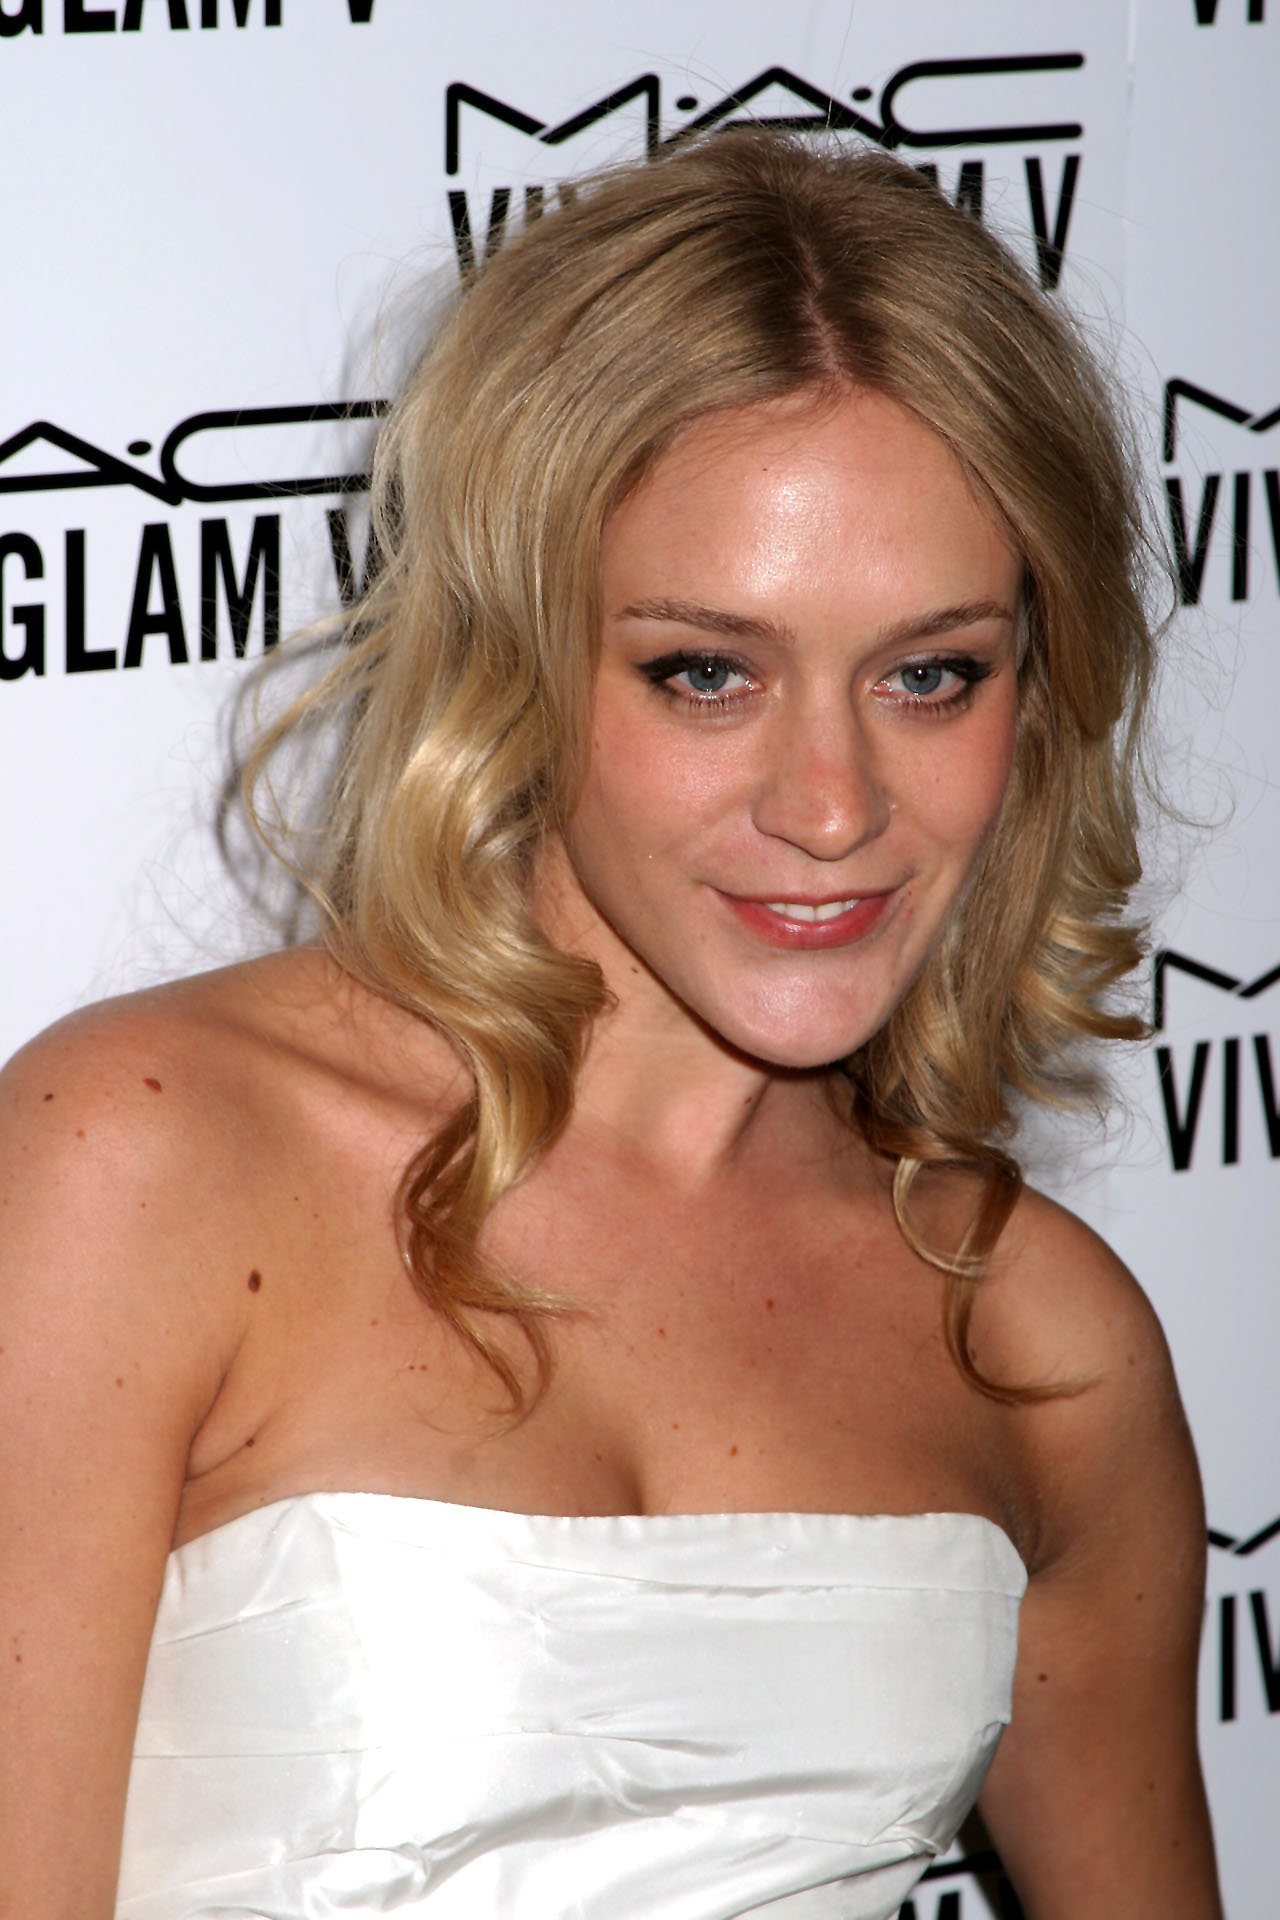 The 43-year old daughter of father H. David Sevigny and mother Janine Malinowski, 173 cm tall Chloë Sevigny in 2018 photo